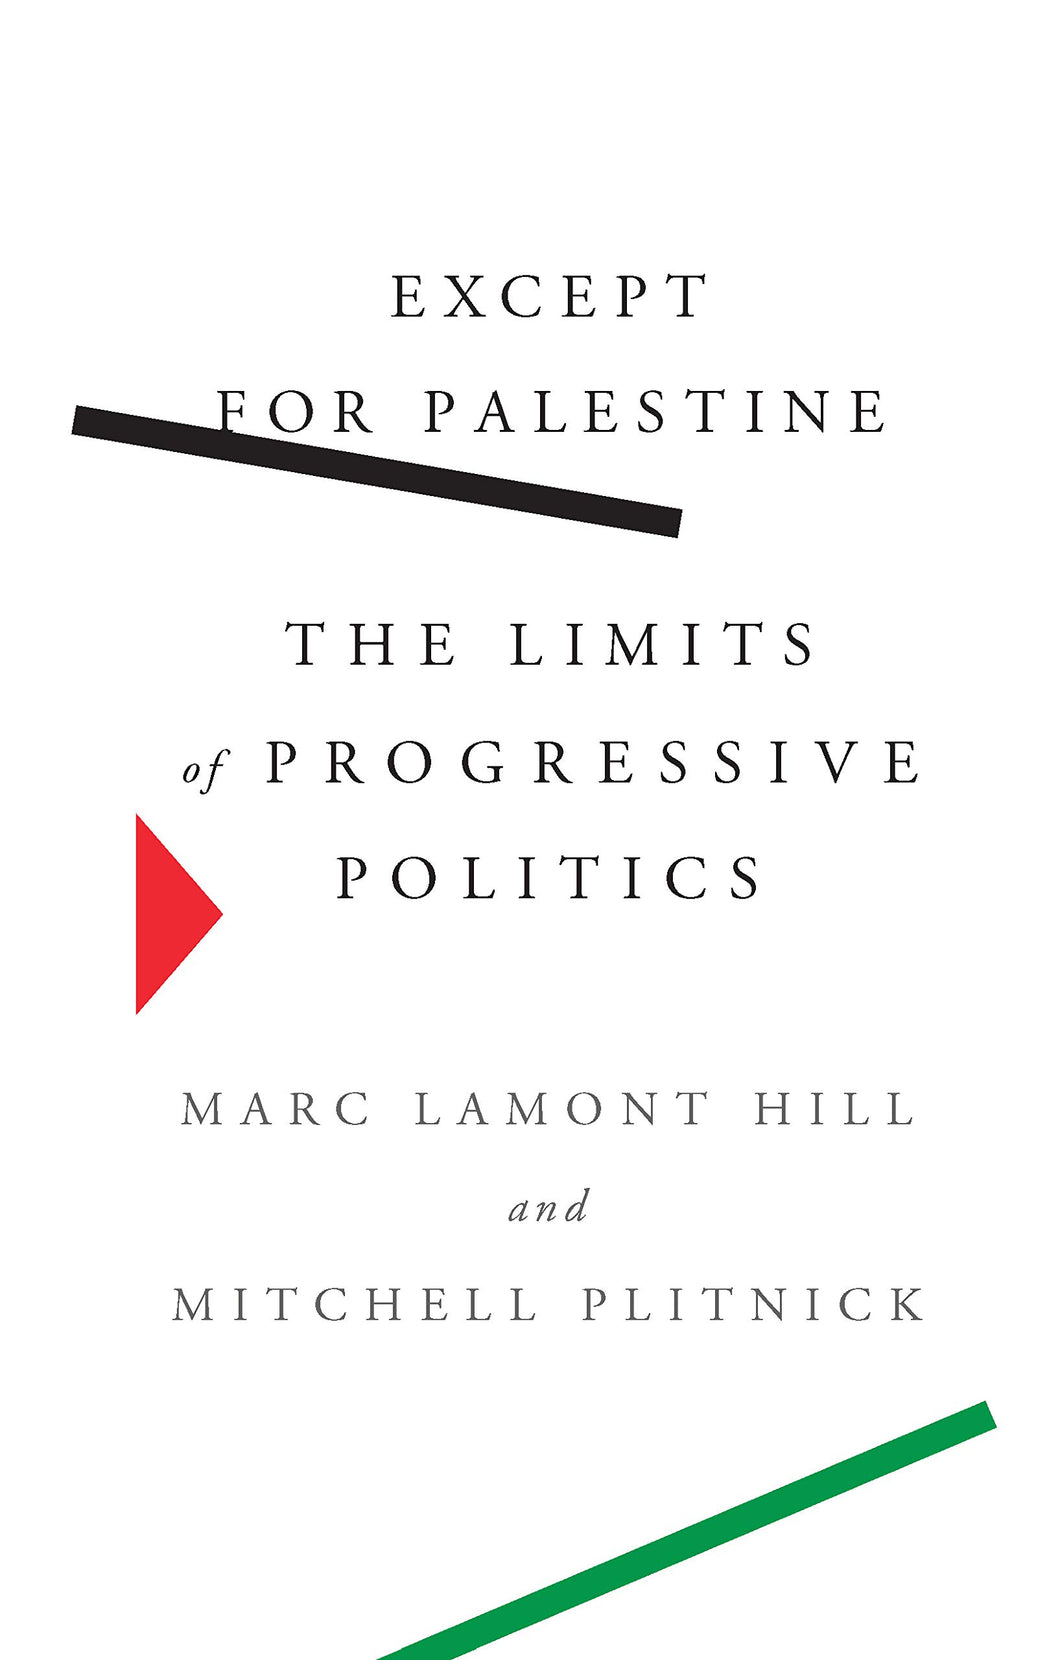 Except for Palestine: The Limits of Progressive Politics by Marc Lamont Hill and Plitnick